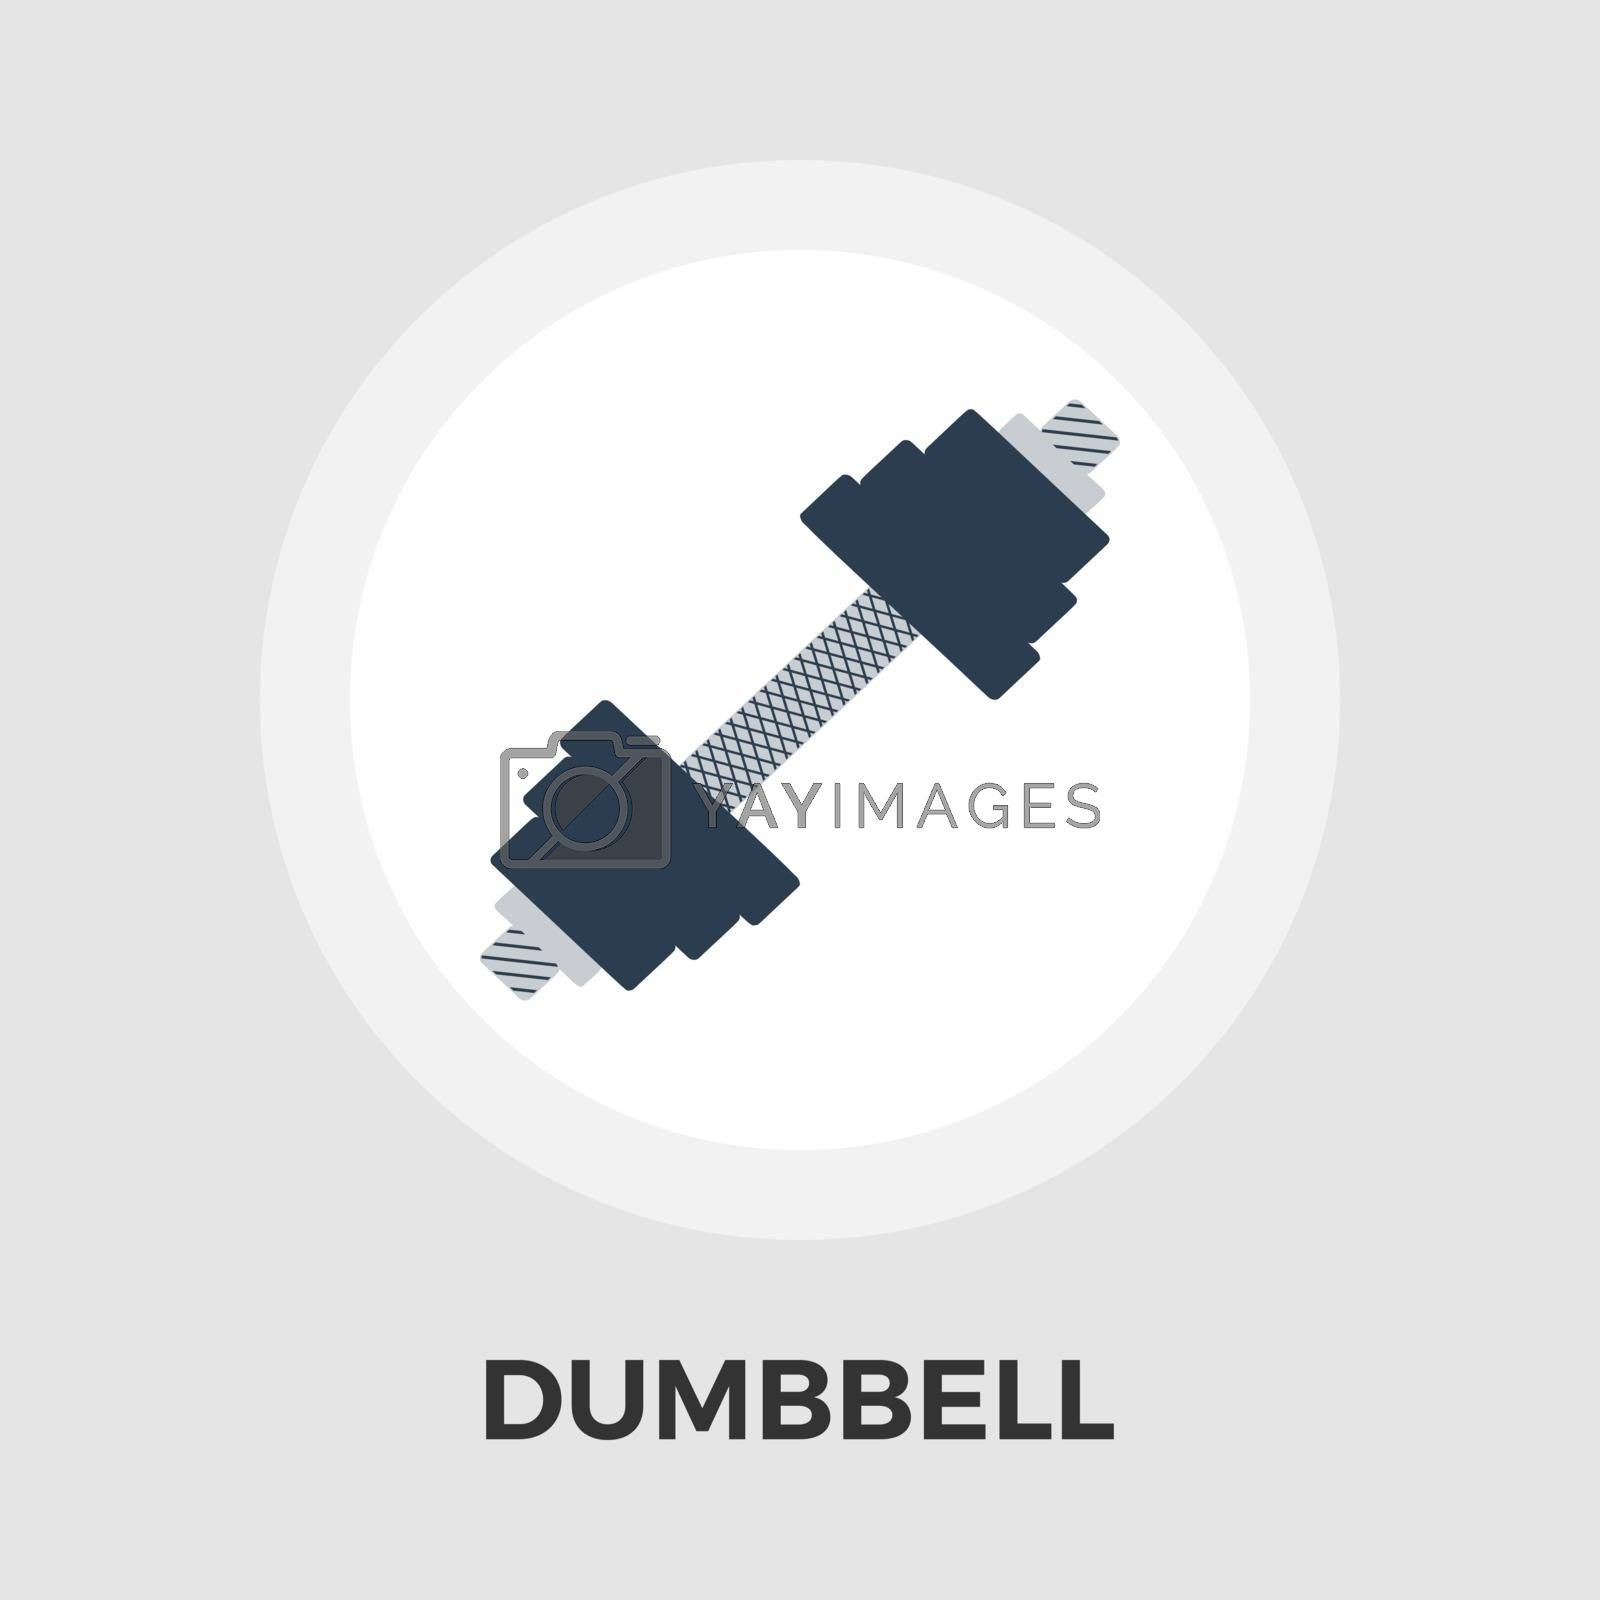 Dumbbell vector flat icon by smoki